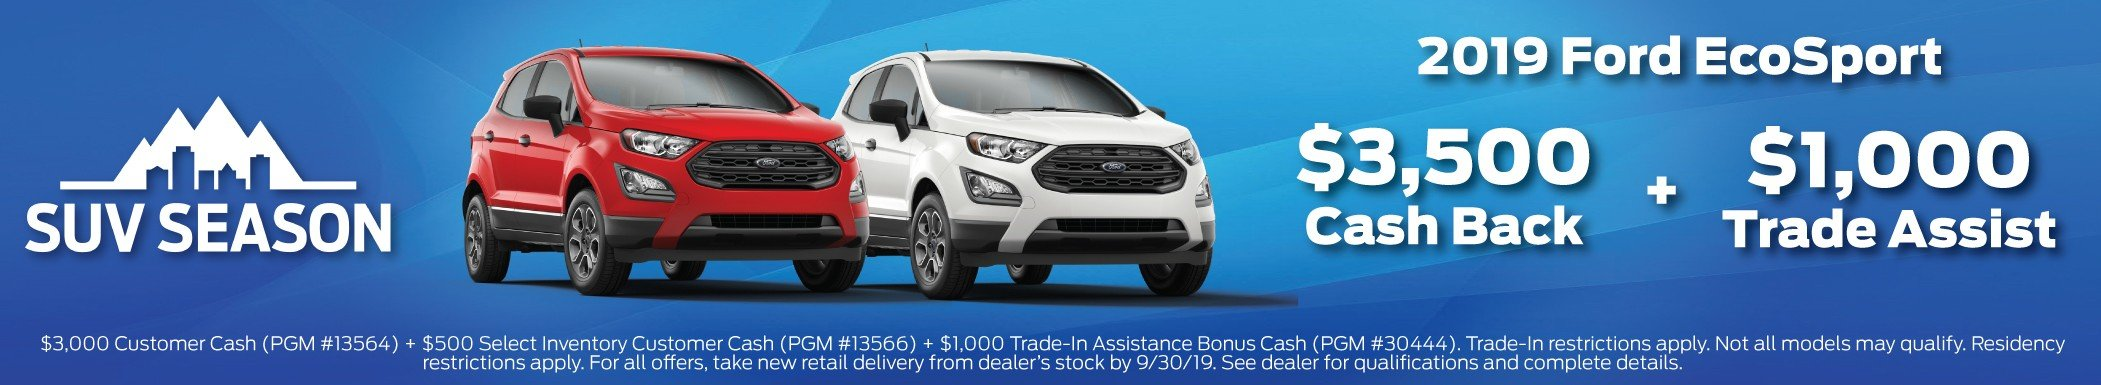 2019 Ford EcoSport Offer 9-30-2019